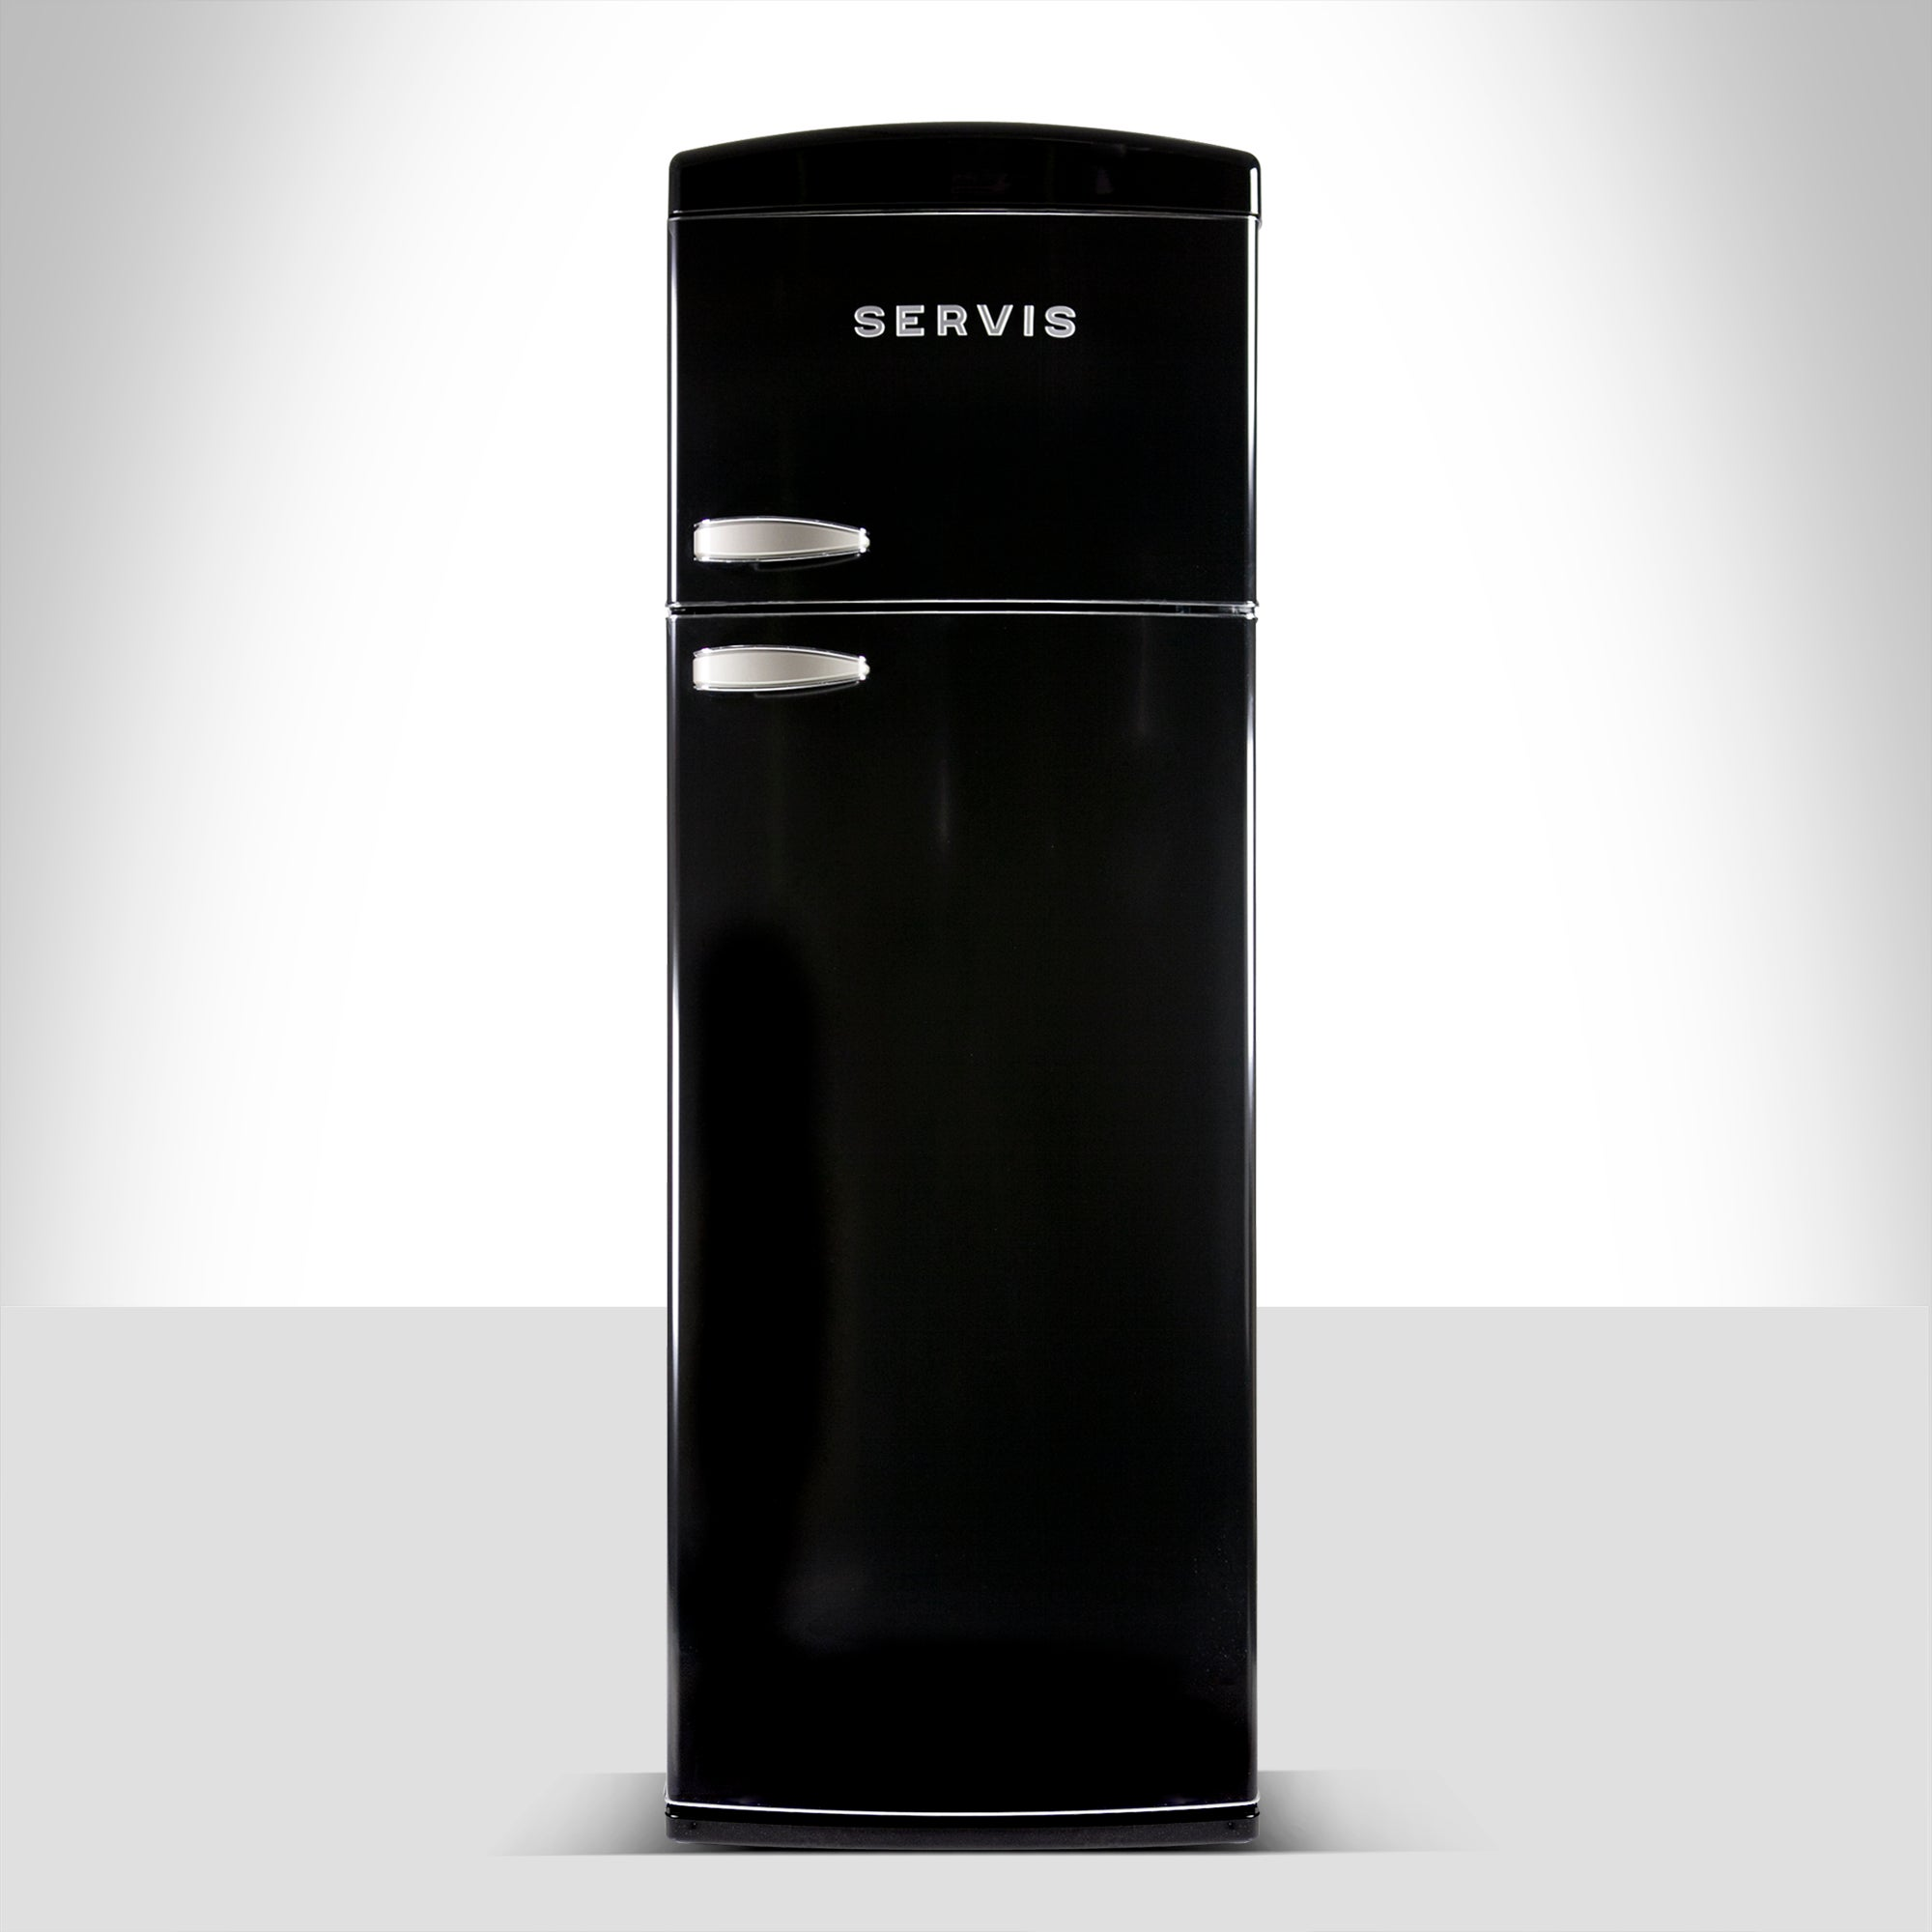 Servis T60170B Black Retro Style Topmount Fridge Freezer